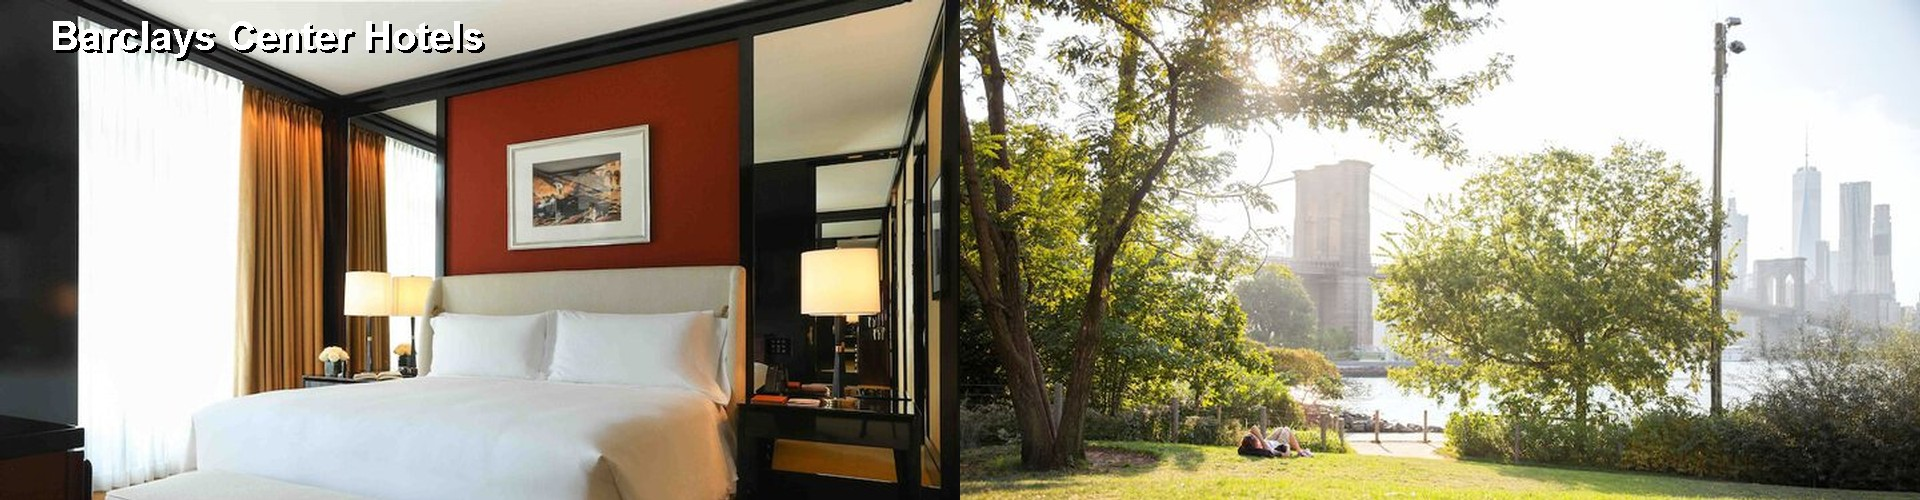 5 Best Hotels near Barclays Center